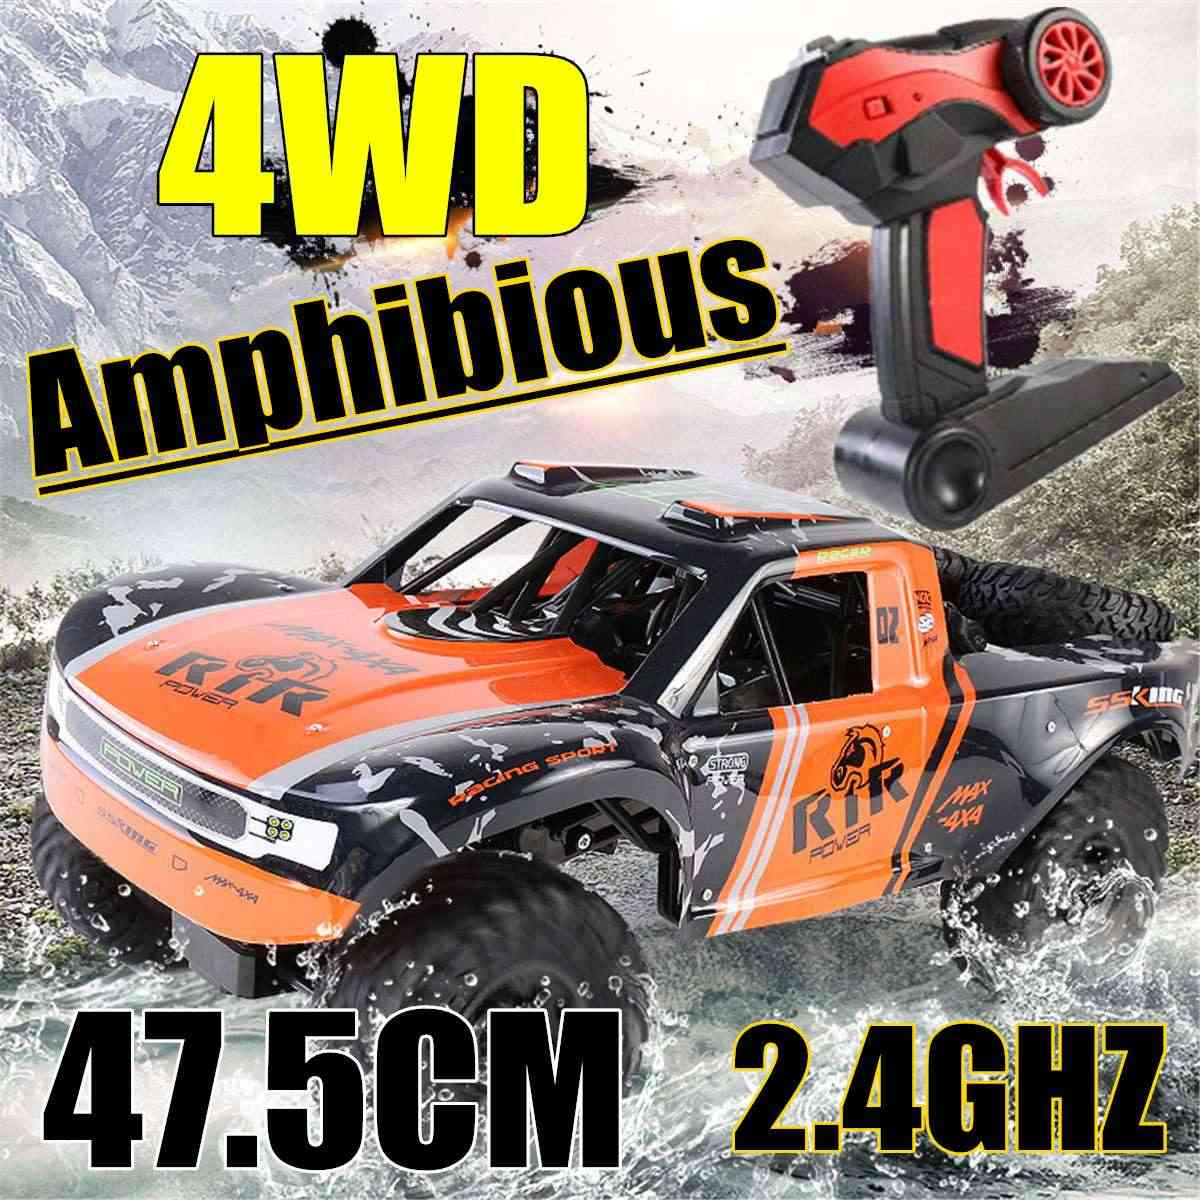 RGT RC Crawler 1:10 4WD RC Gigi Mobil Off Road Truk RC Rock Crawler Cruiser Hobi Crawler Rtr 4X4 Tahan Air 48 Cm RC Mainan